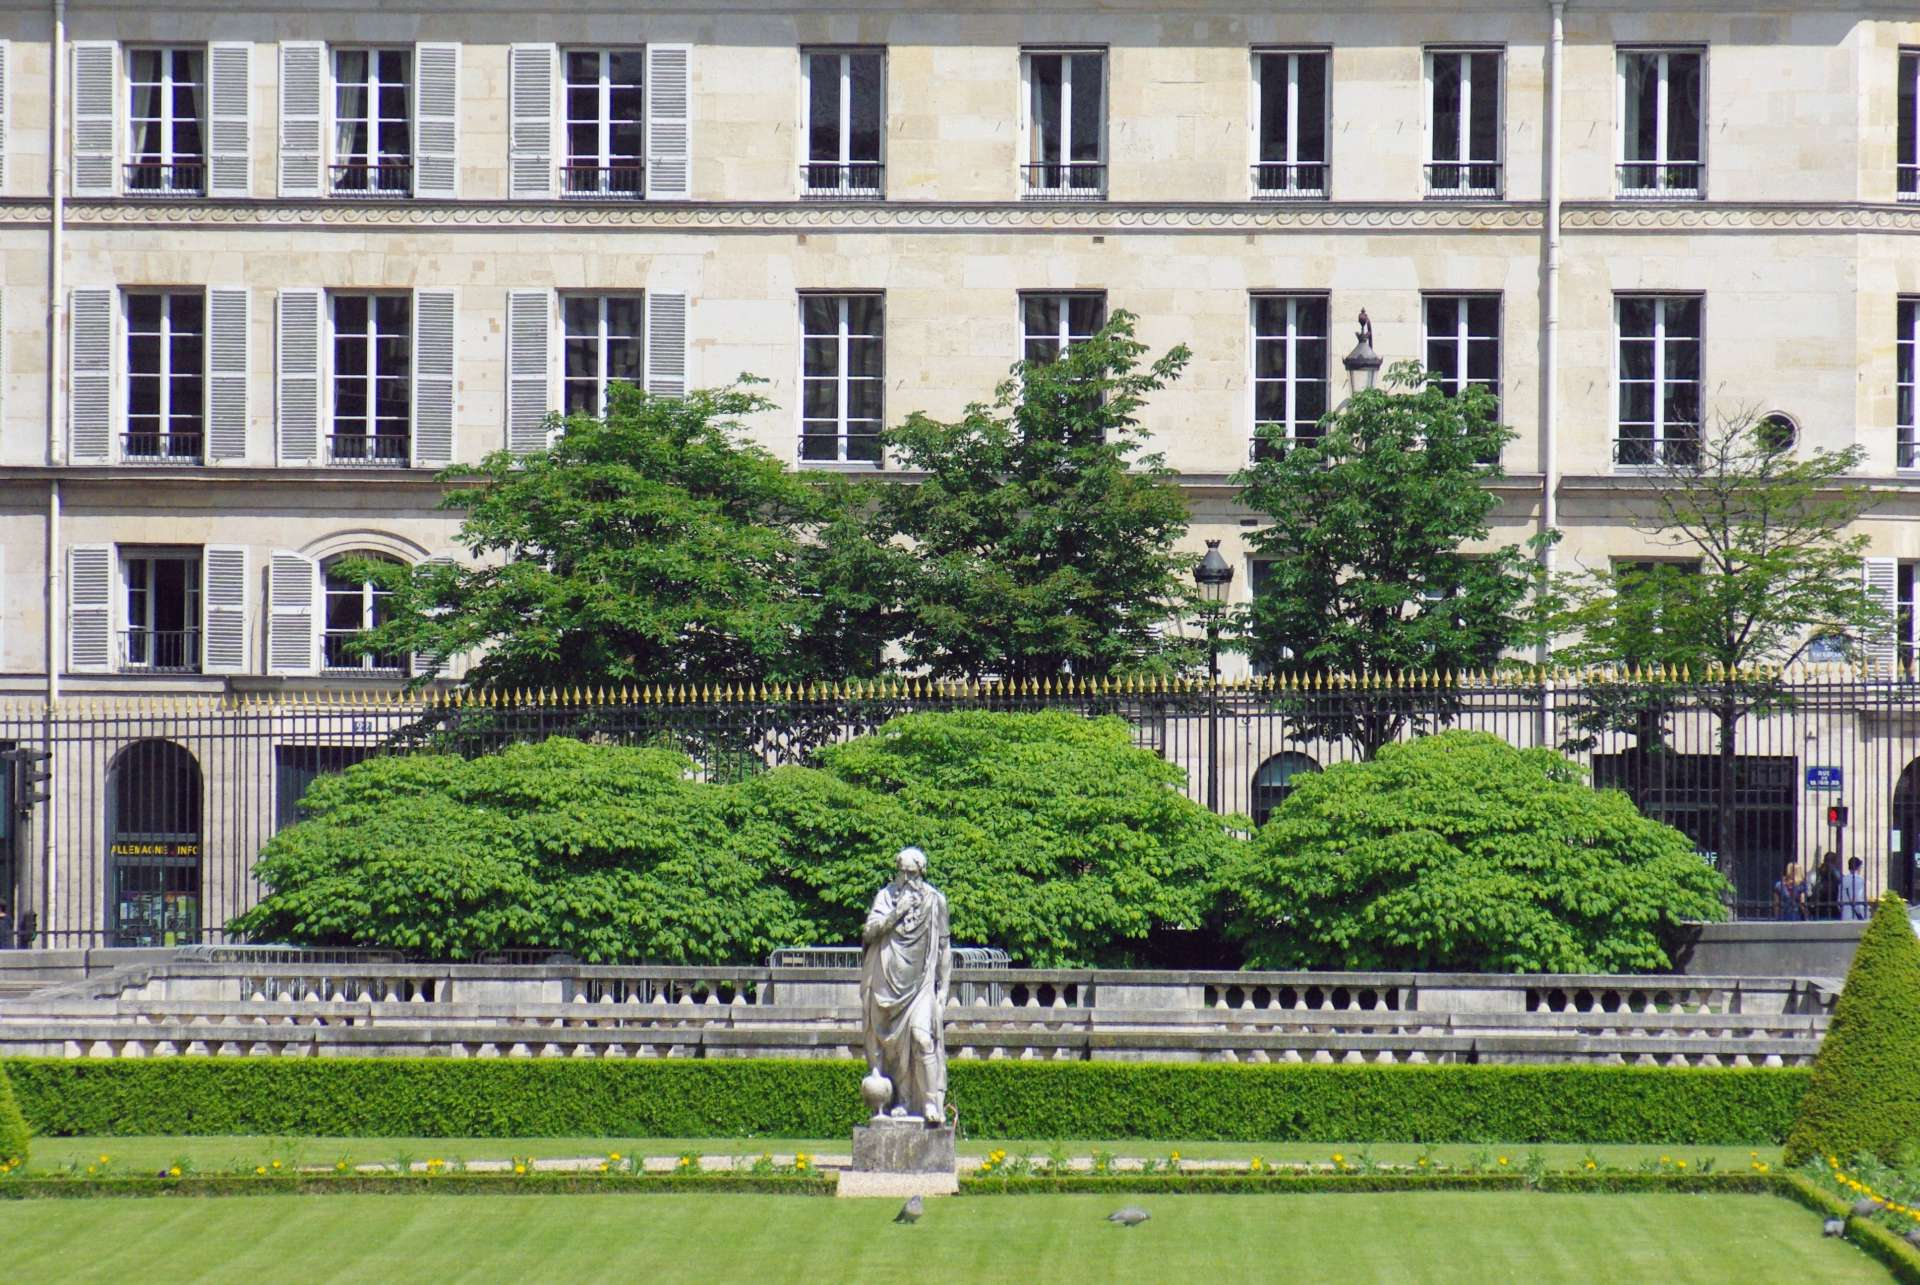 Luxembourg Garden and Rue de Vaugirard © French Moments